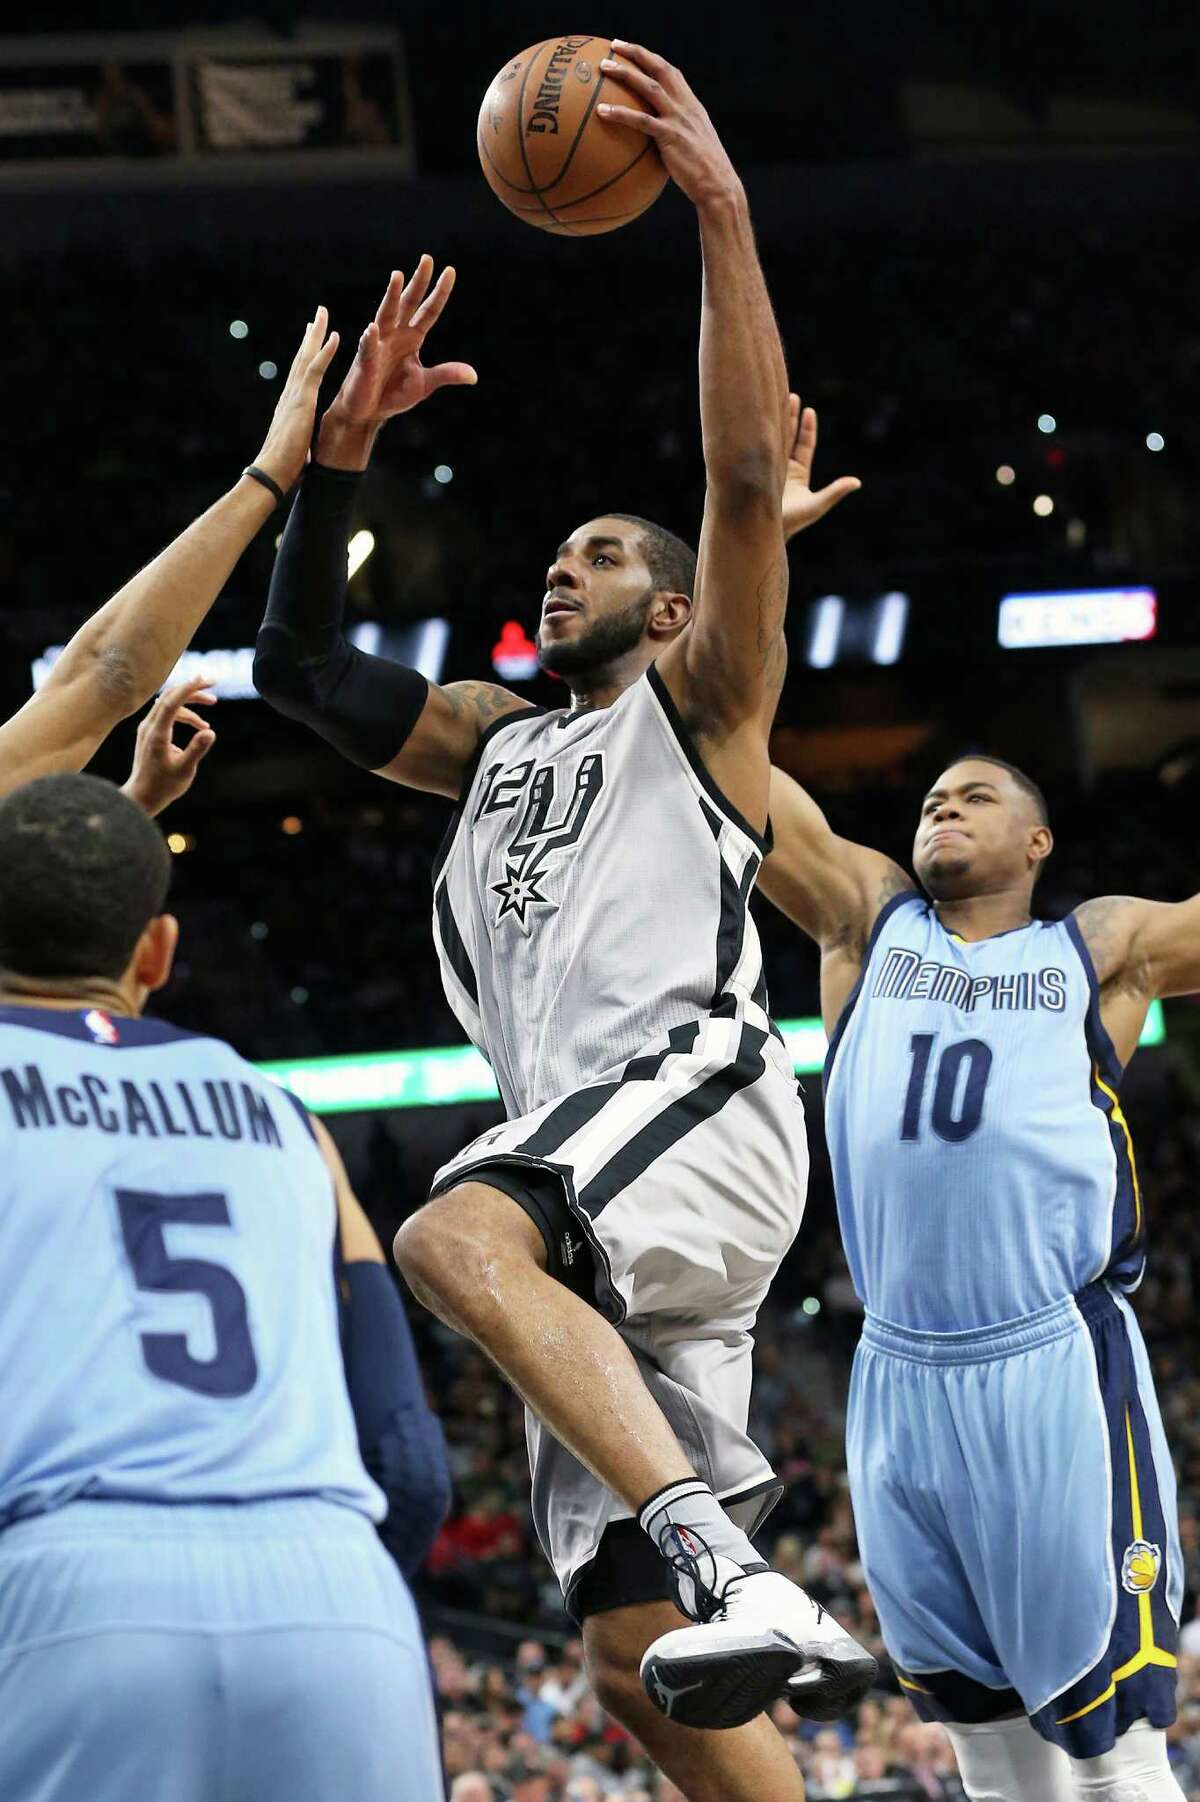 LaMarcus Aldridge gets by Jerell Martin as the Spurs host the Grizzlies at the AT&T Center on March 25, 2016.